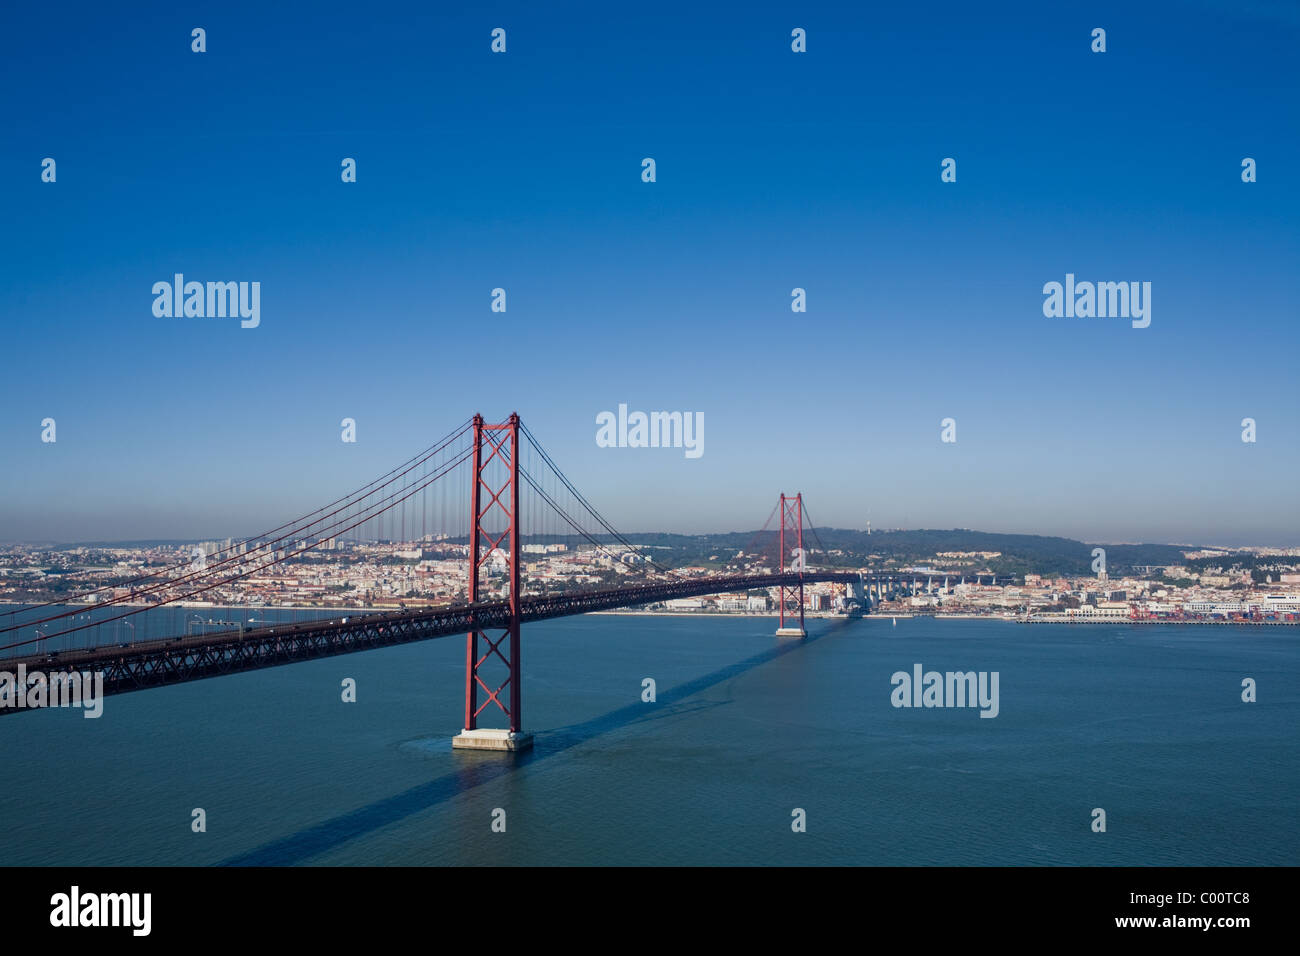 25th of April Bridge over Tagus River, built 1966, Lisbon, Portugal on other side Stock Photo